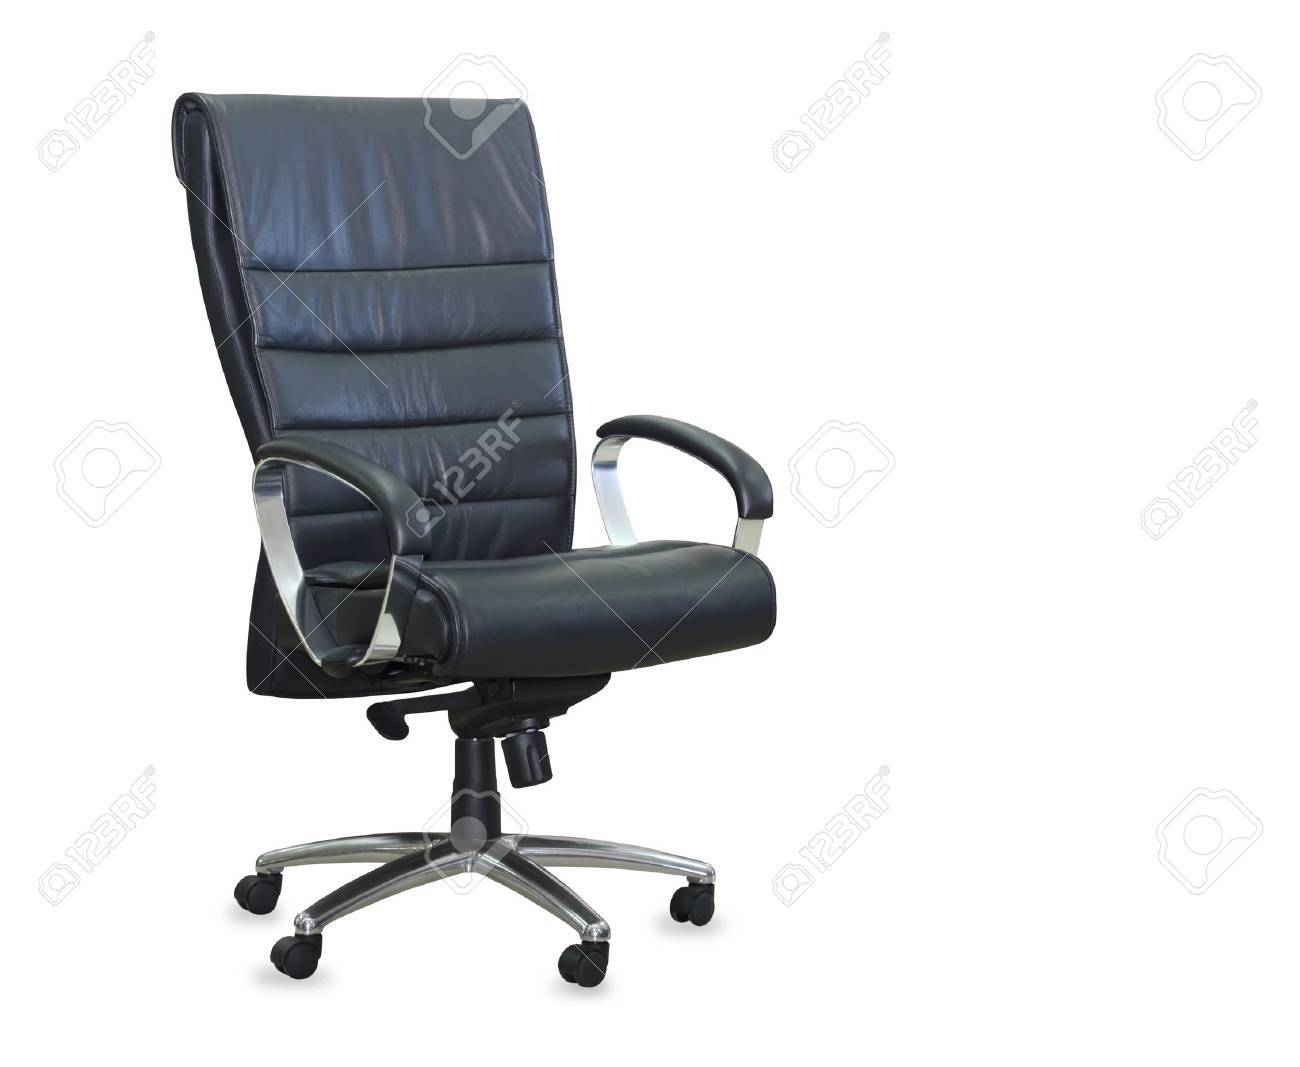 Marvelous Modern Office Chair From Black Leather Isolated Interior Design Ideas Gentotryabchikinfo